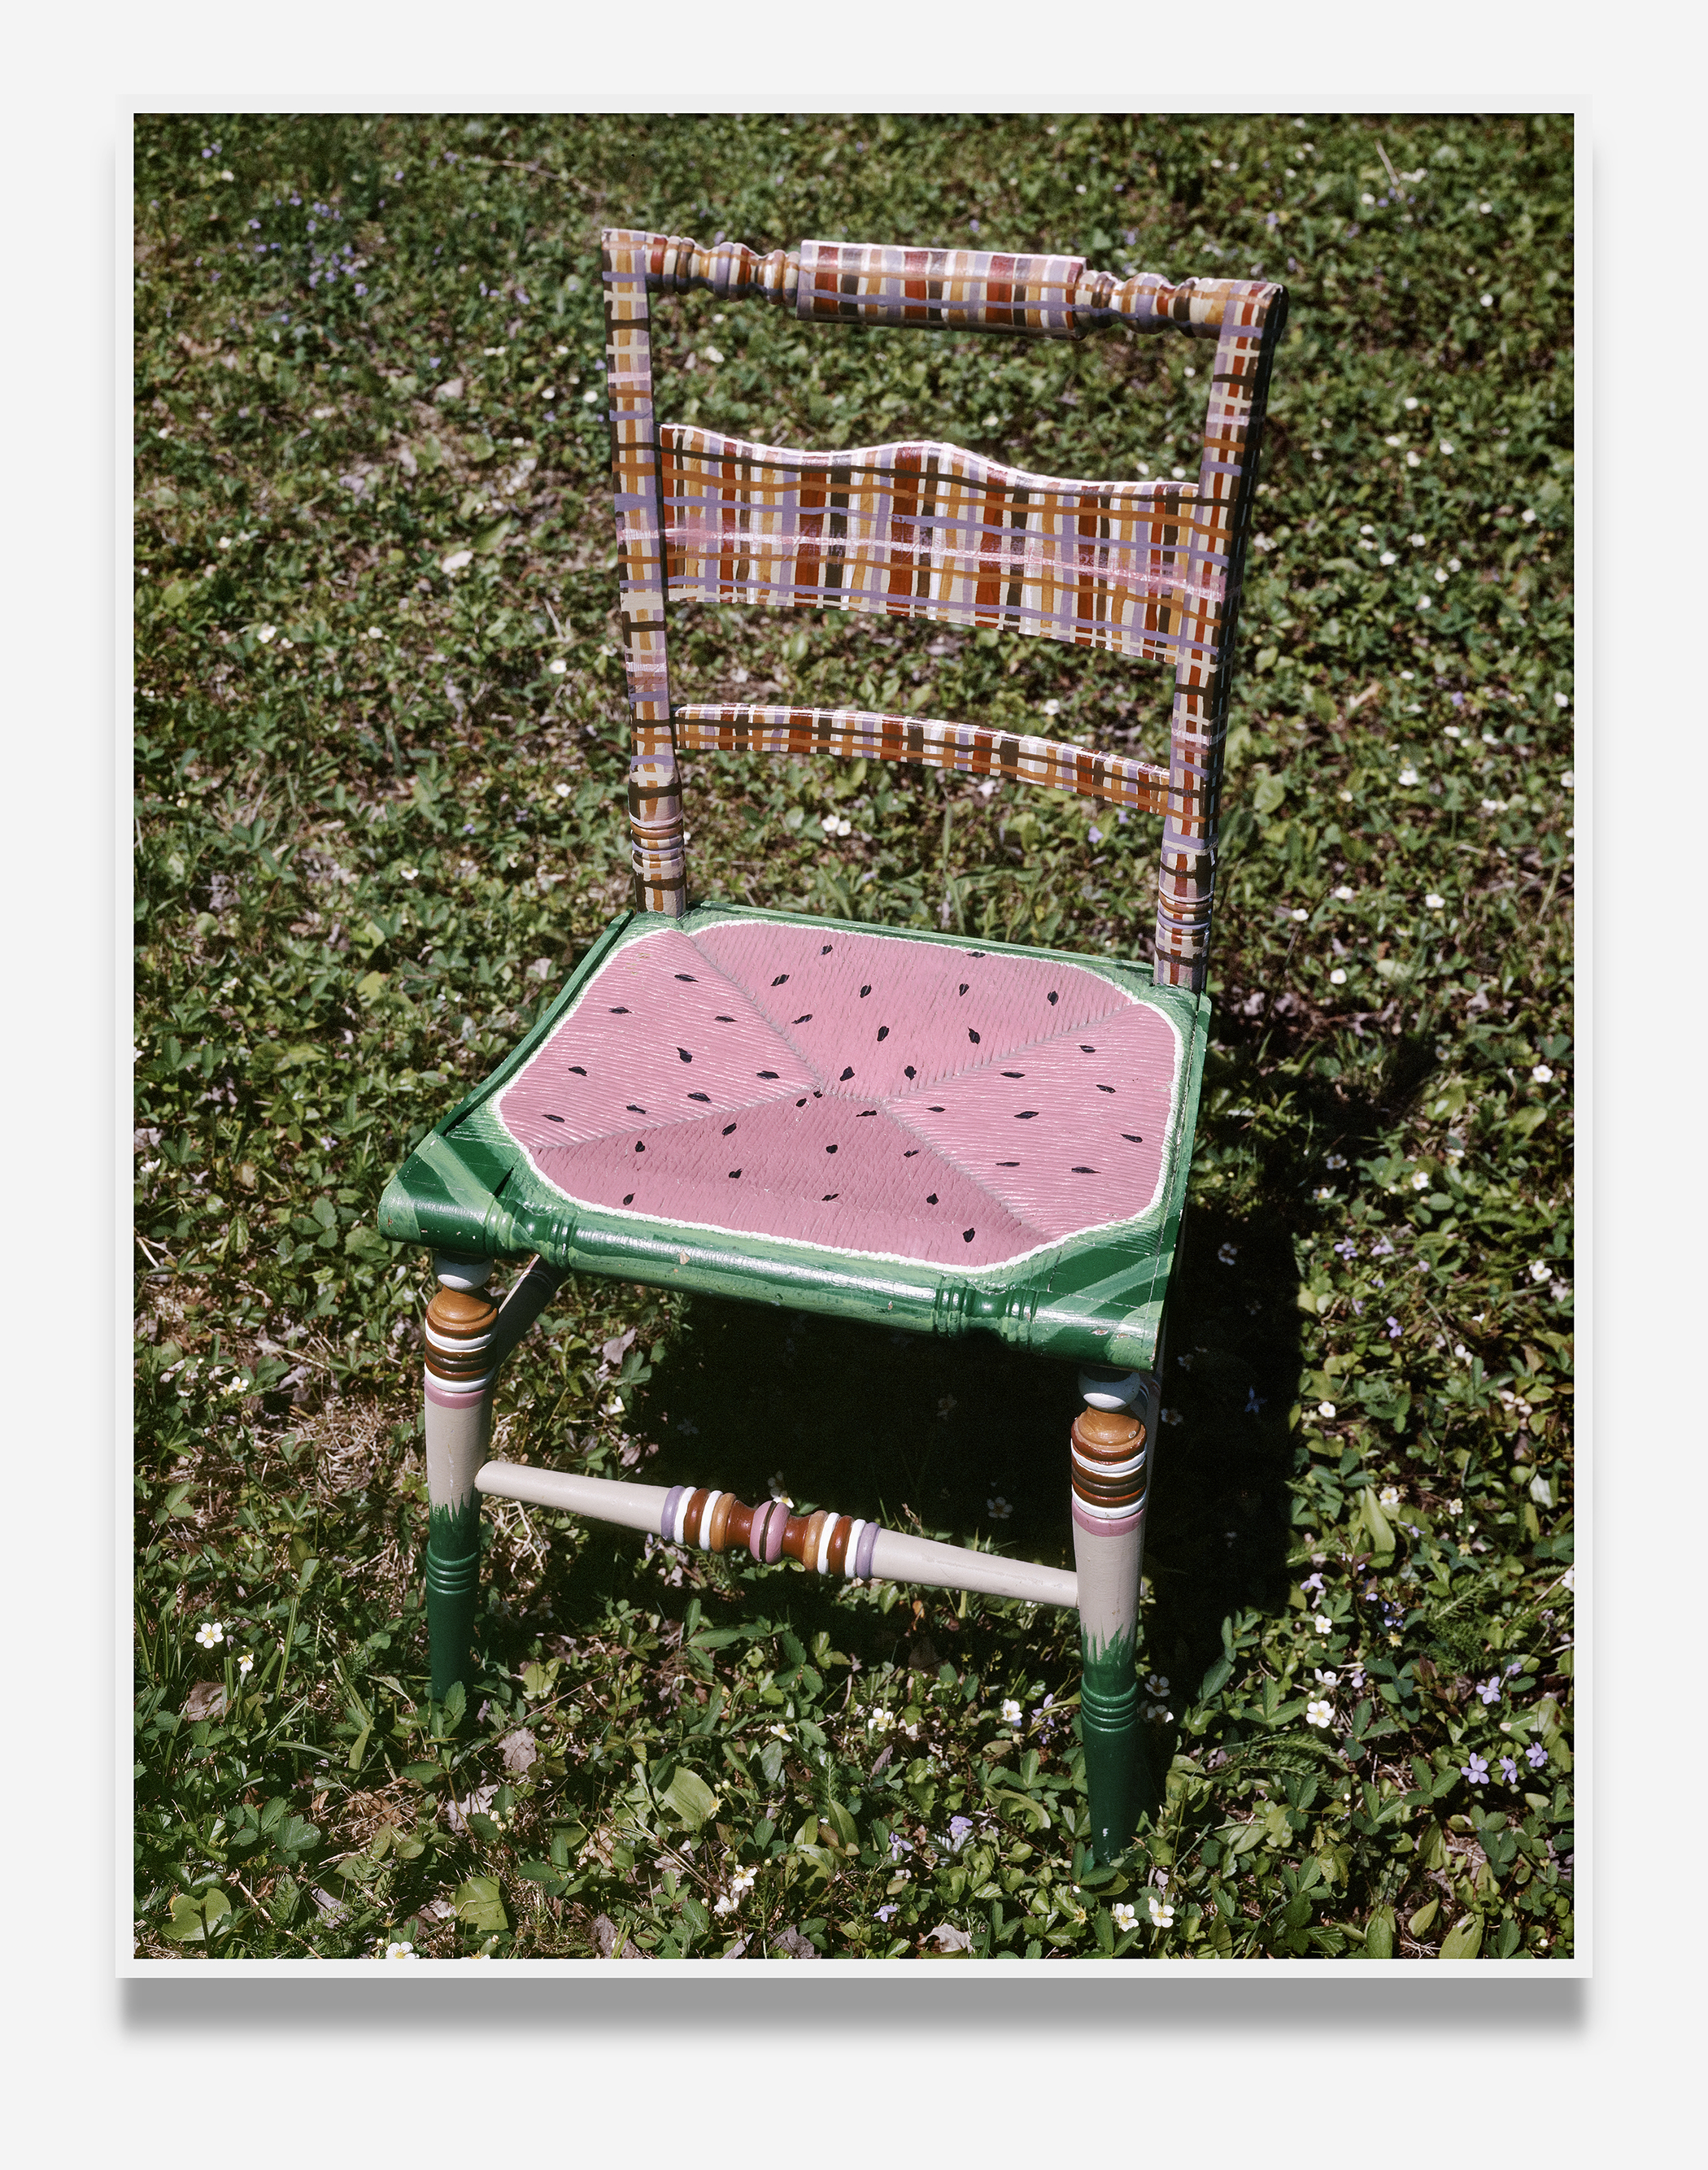 Watermelon_chair.jpg